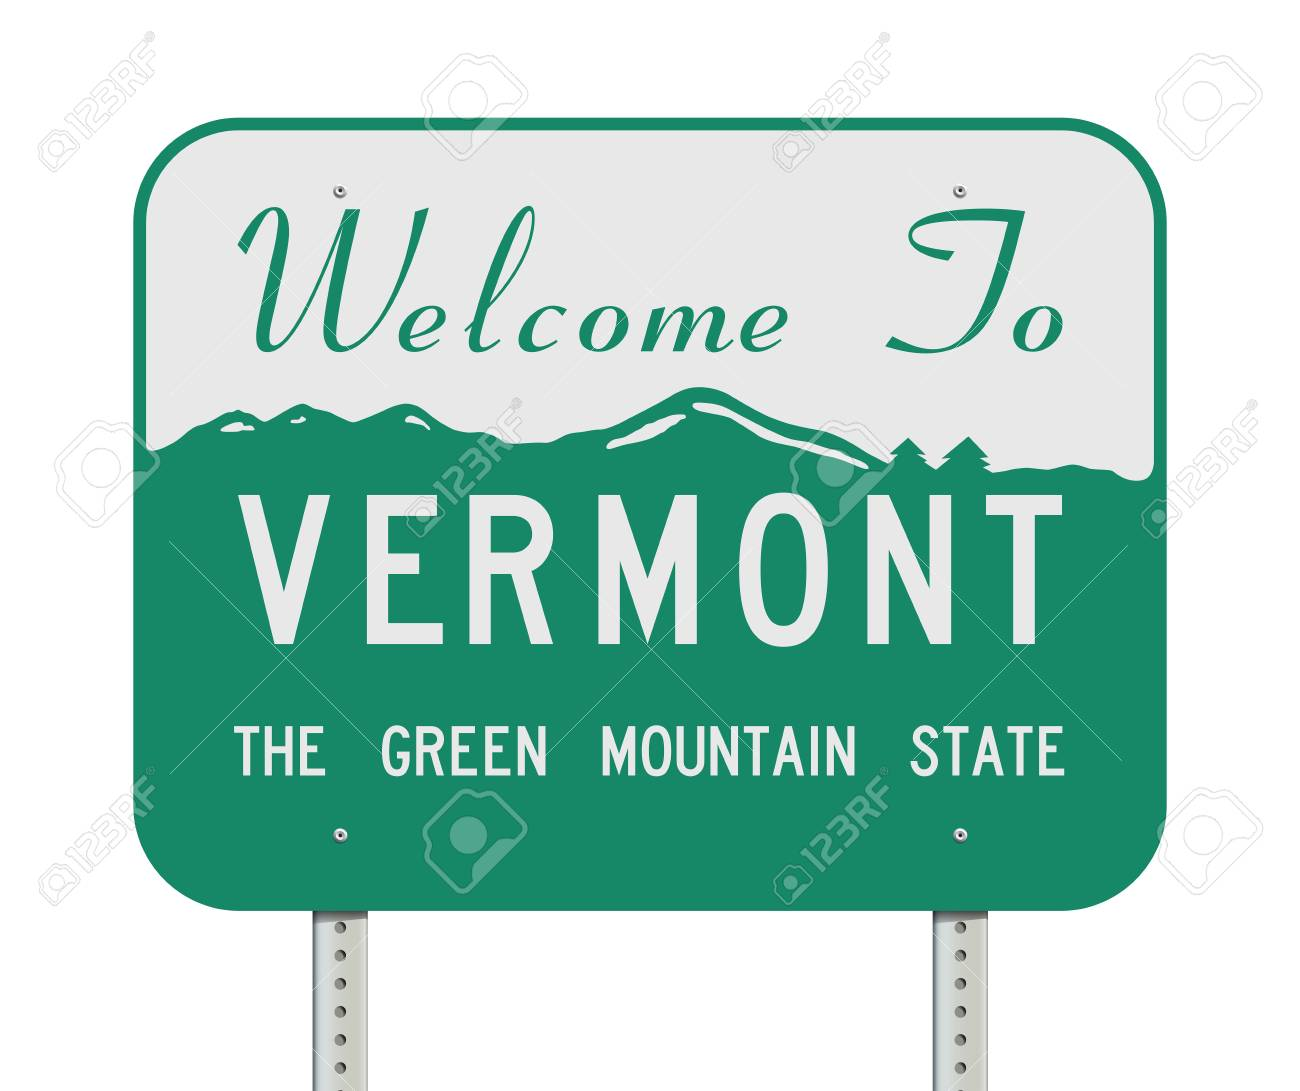 Cliparts Vermont 101266780 Image Welcome Vectors Free Sign And Stock Illustration Royalty To Road